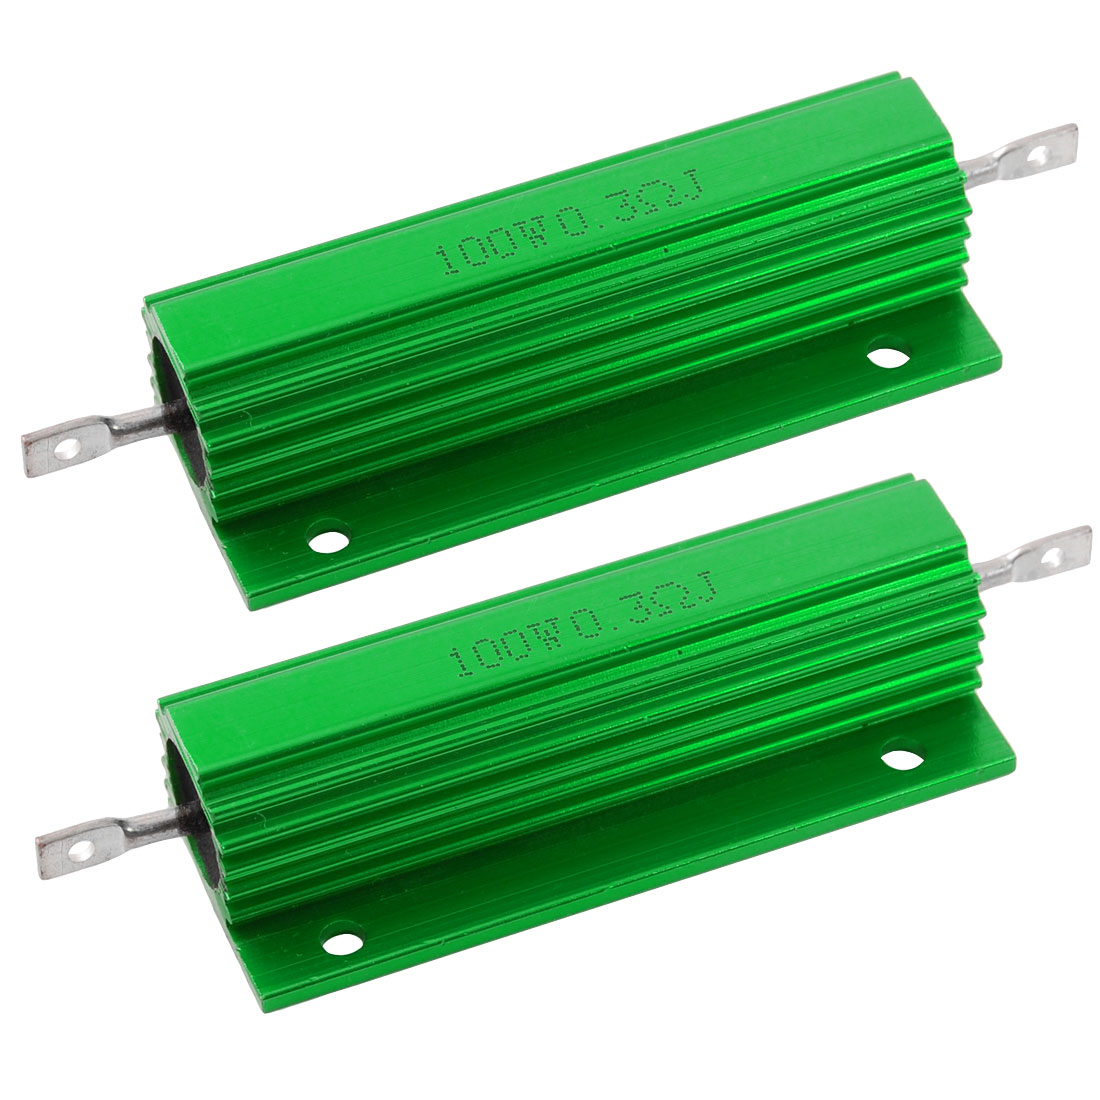 2 Pcs Green 100 Watt 0.3 Ohm 5% Aluminum Shell Wire Wound Resistors